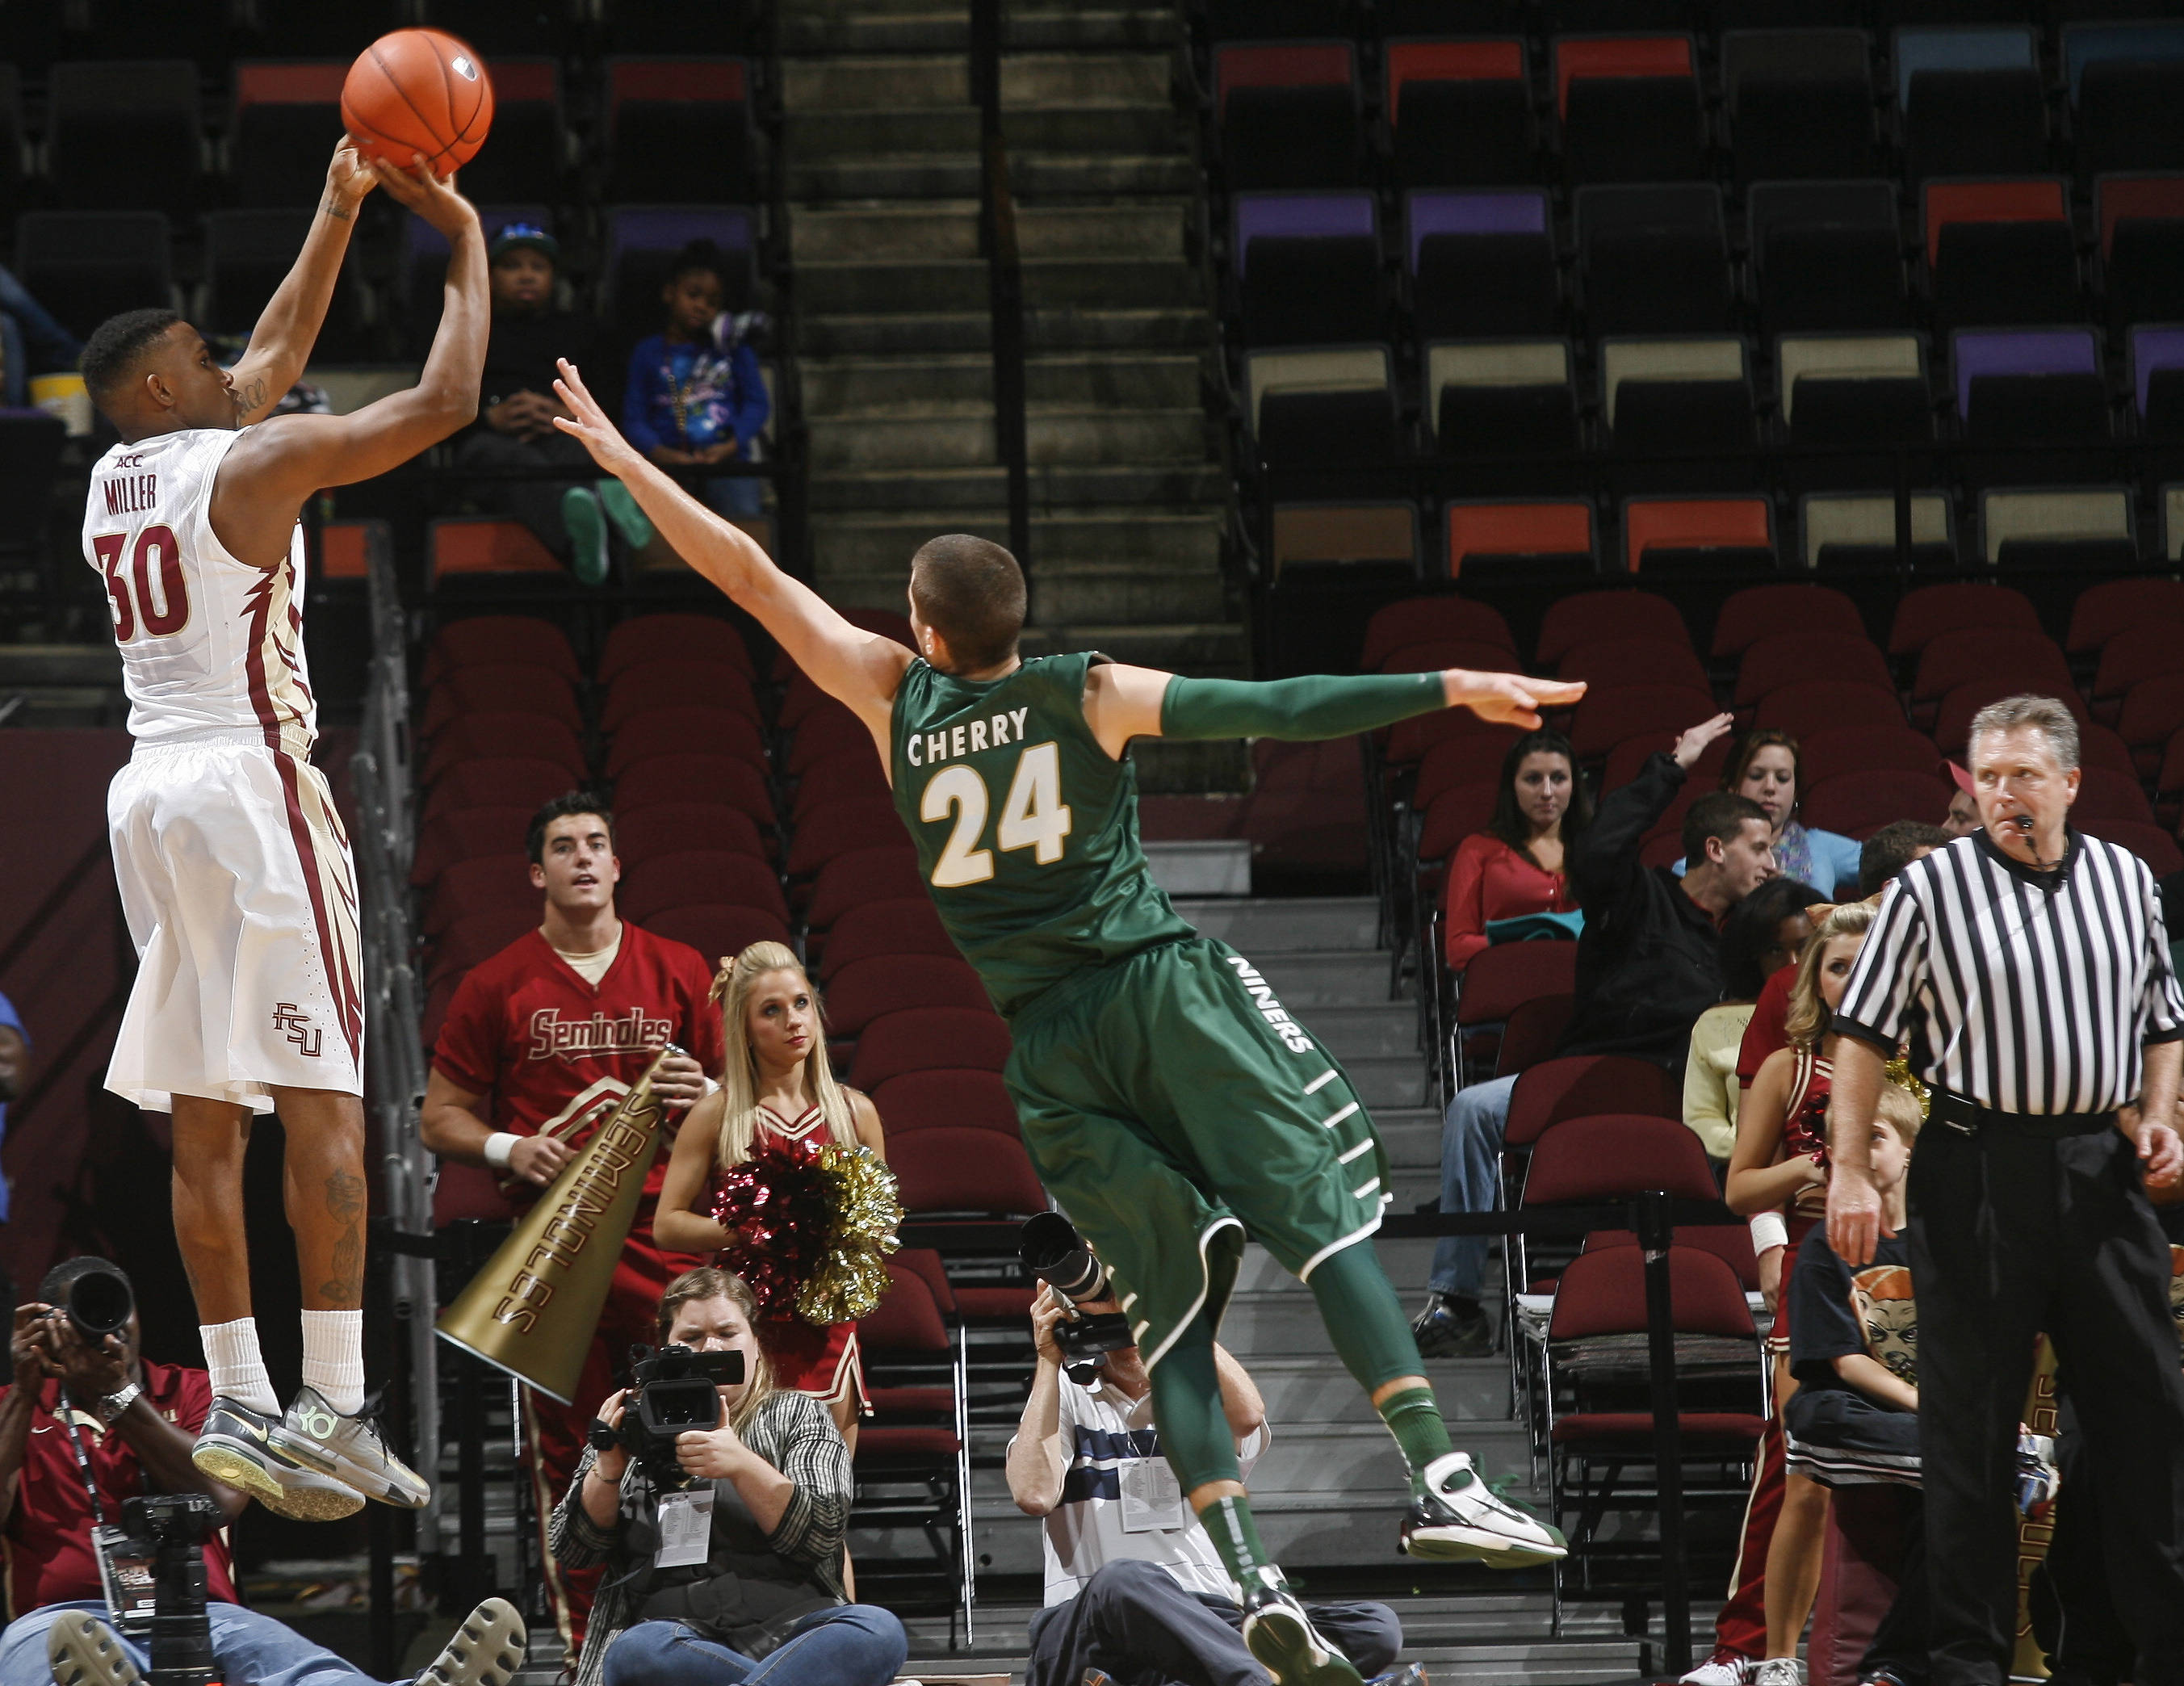 Dec 17, 2013; Tallahassee, FL, USA; Florida State Seminoles guard Ian Miller (30) makes a three-point basket over the defense of Charlotte 49ers guard Ben Cherry (24) in the second half of their game at the Donald L. Tucker Center. The Florida State Seminoles beat the Charlotte 49ers 106-62. Mandatory Credit: Phil Sears-USA TODAY Sports